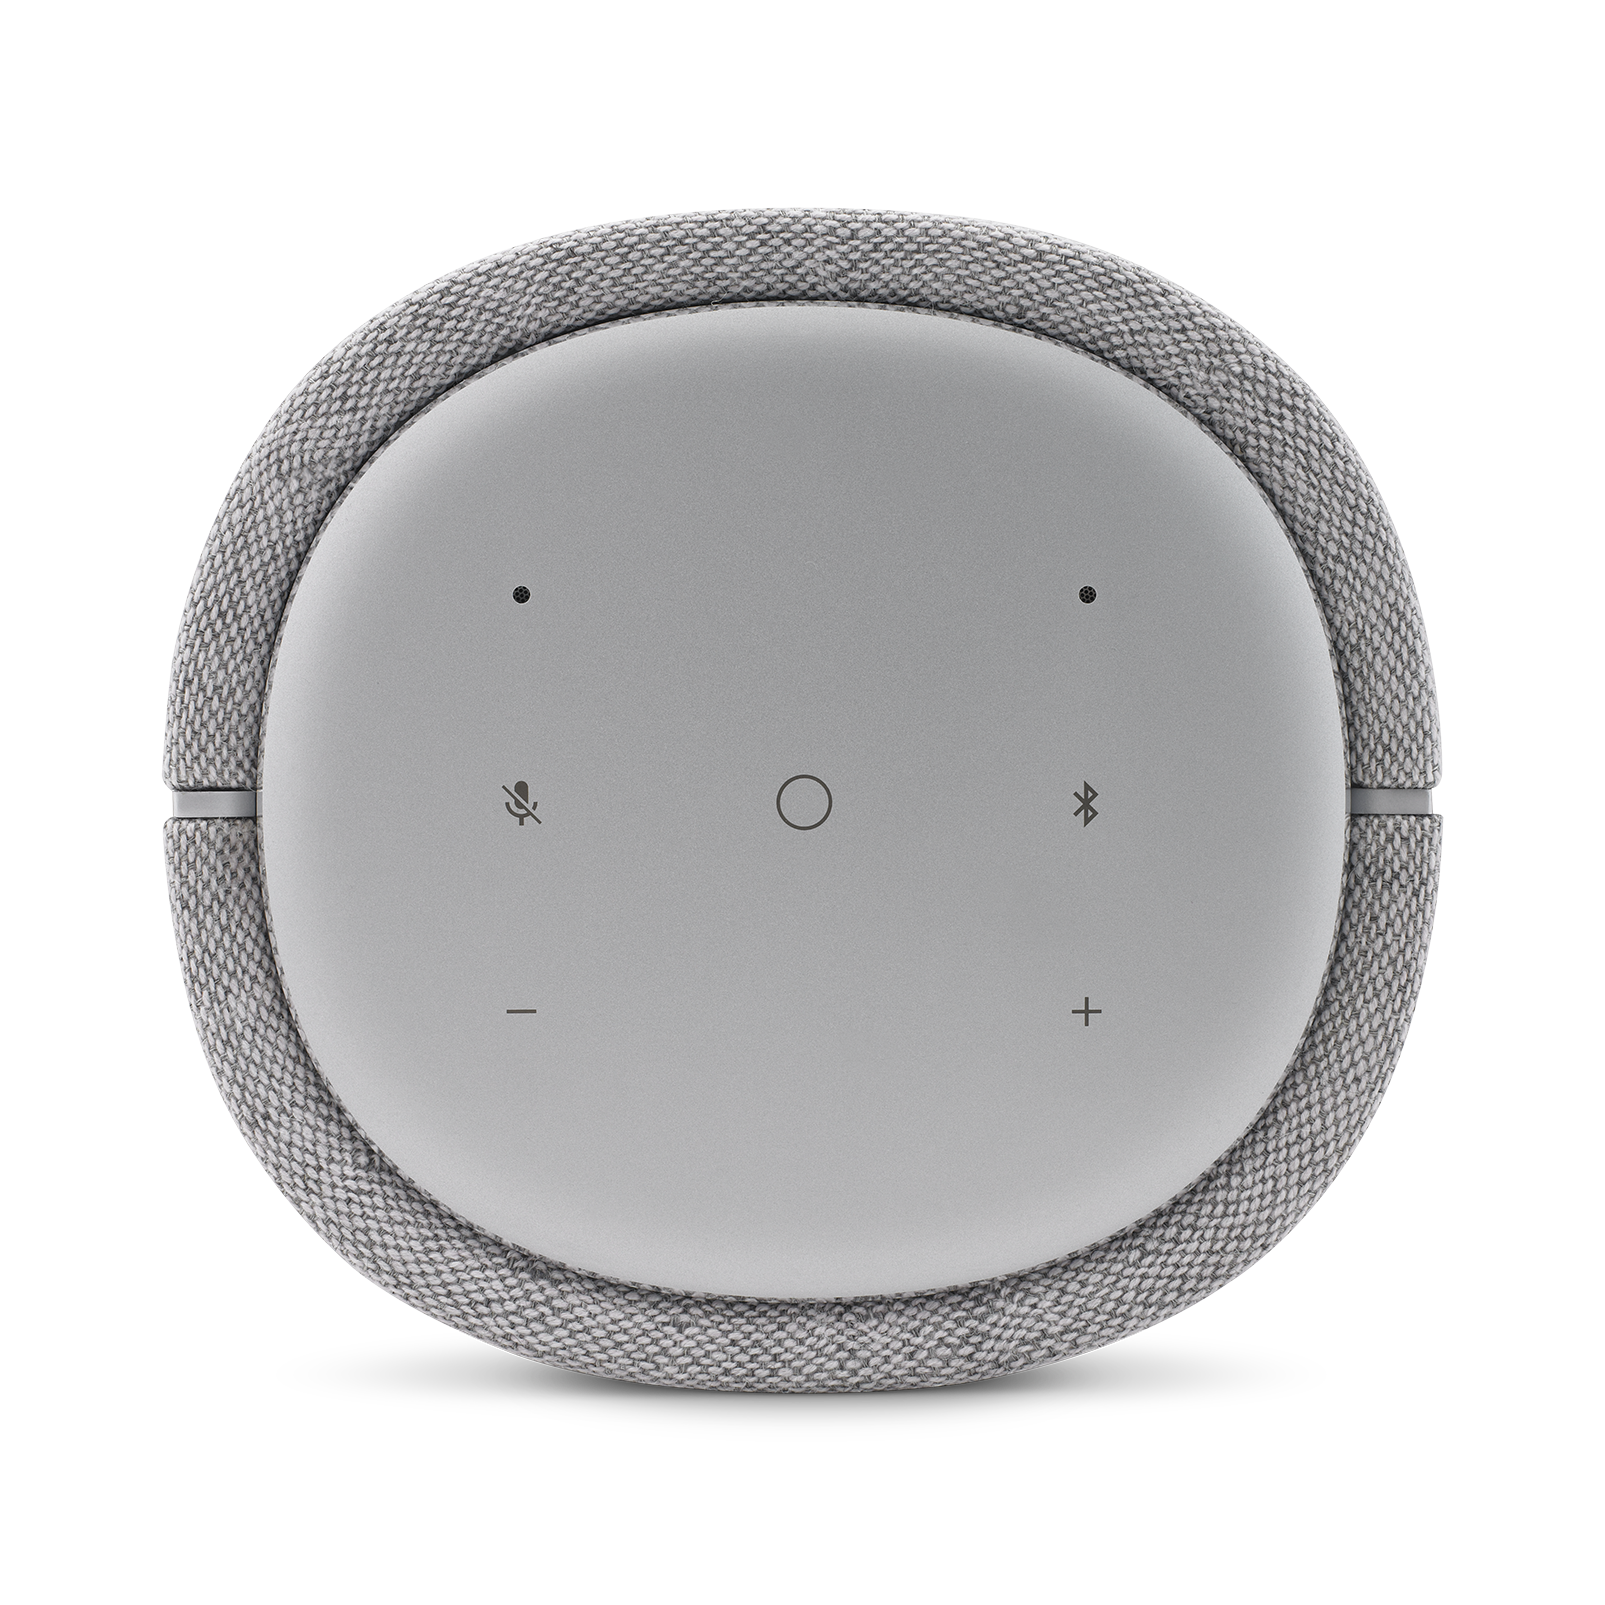 Harman Kardon Citation 100 MKII - Grey - Bring rich wireless sound to any space with the smart and compact Harman Kardon Citation 100 mkII. Its innovative features include AirPlay, Chromecast built-in and the Google Assistant. - Detailshot 2